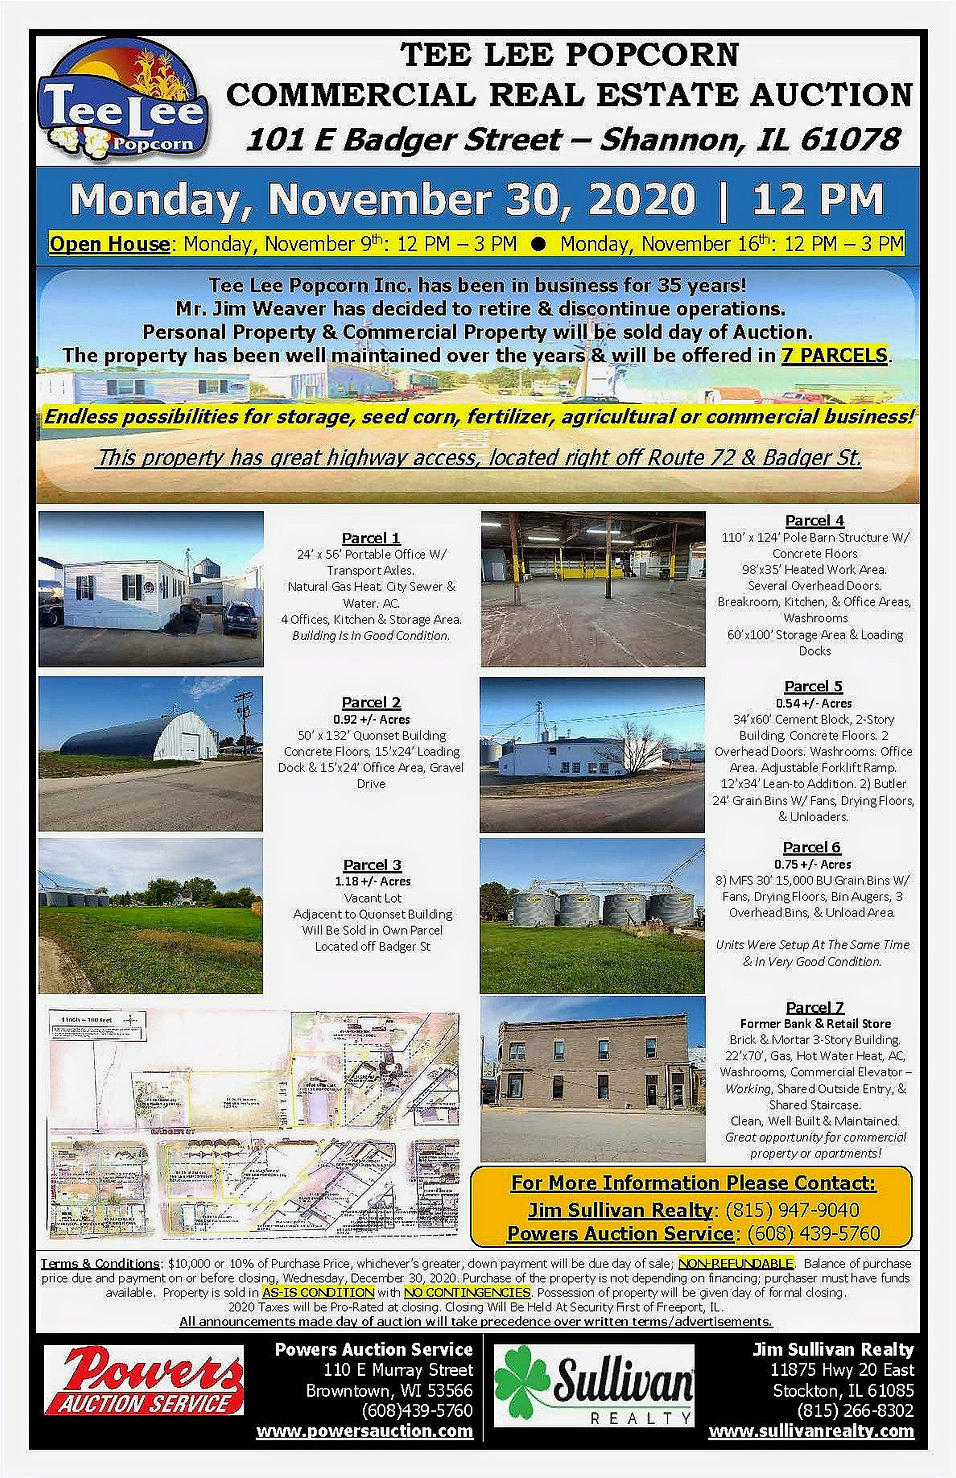 Tee Lee Popcorn Real Estate Auction